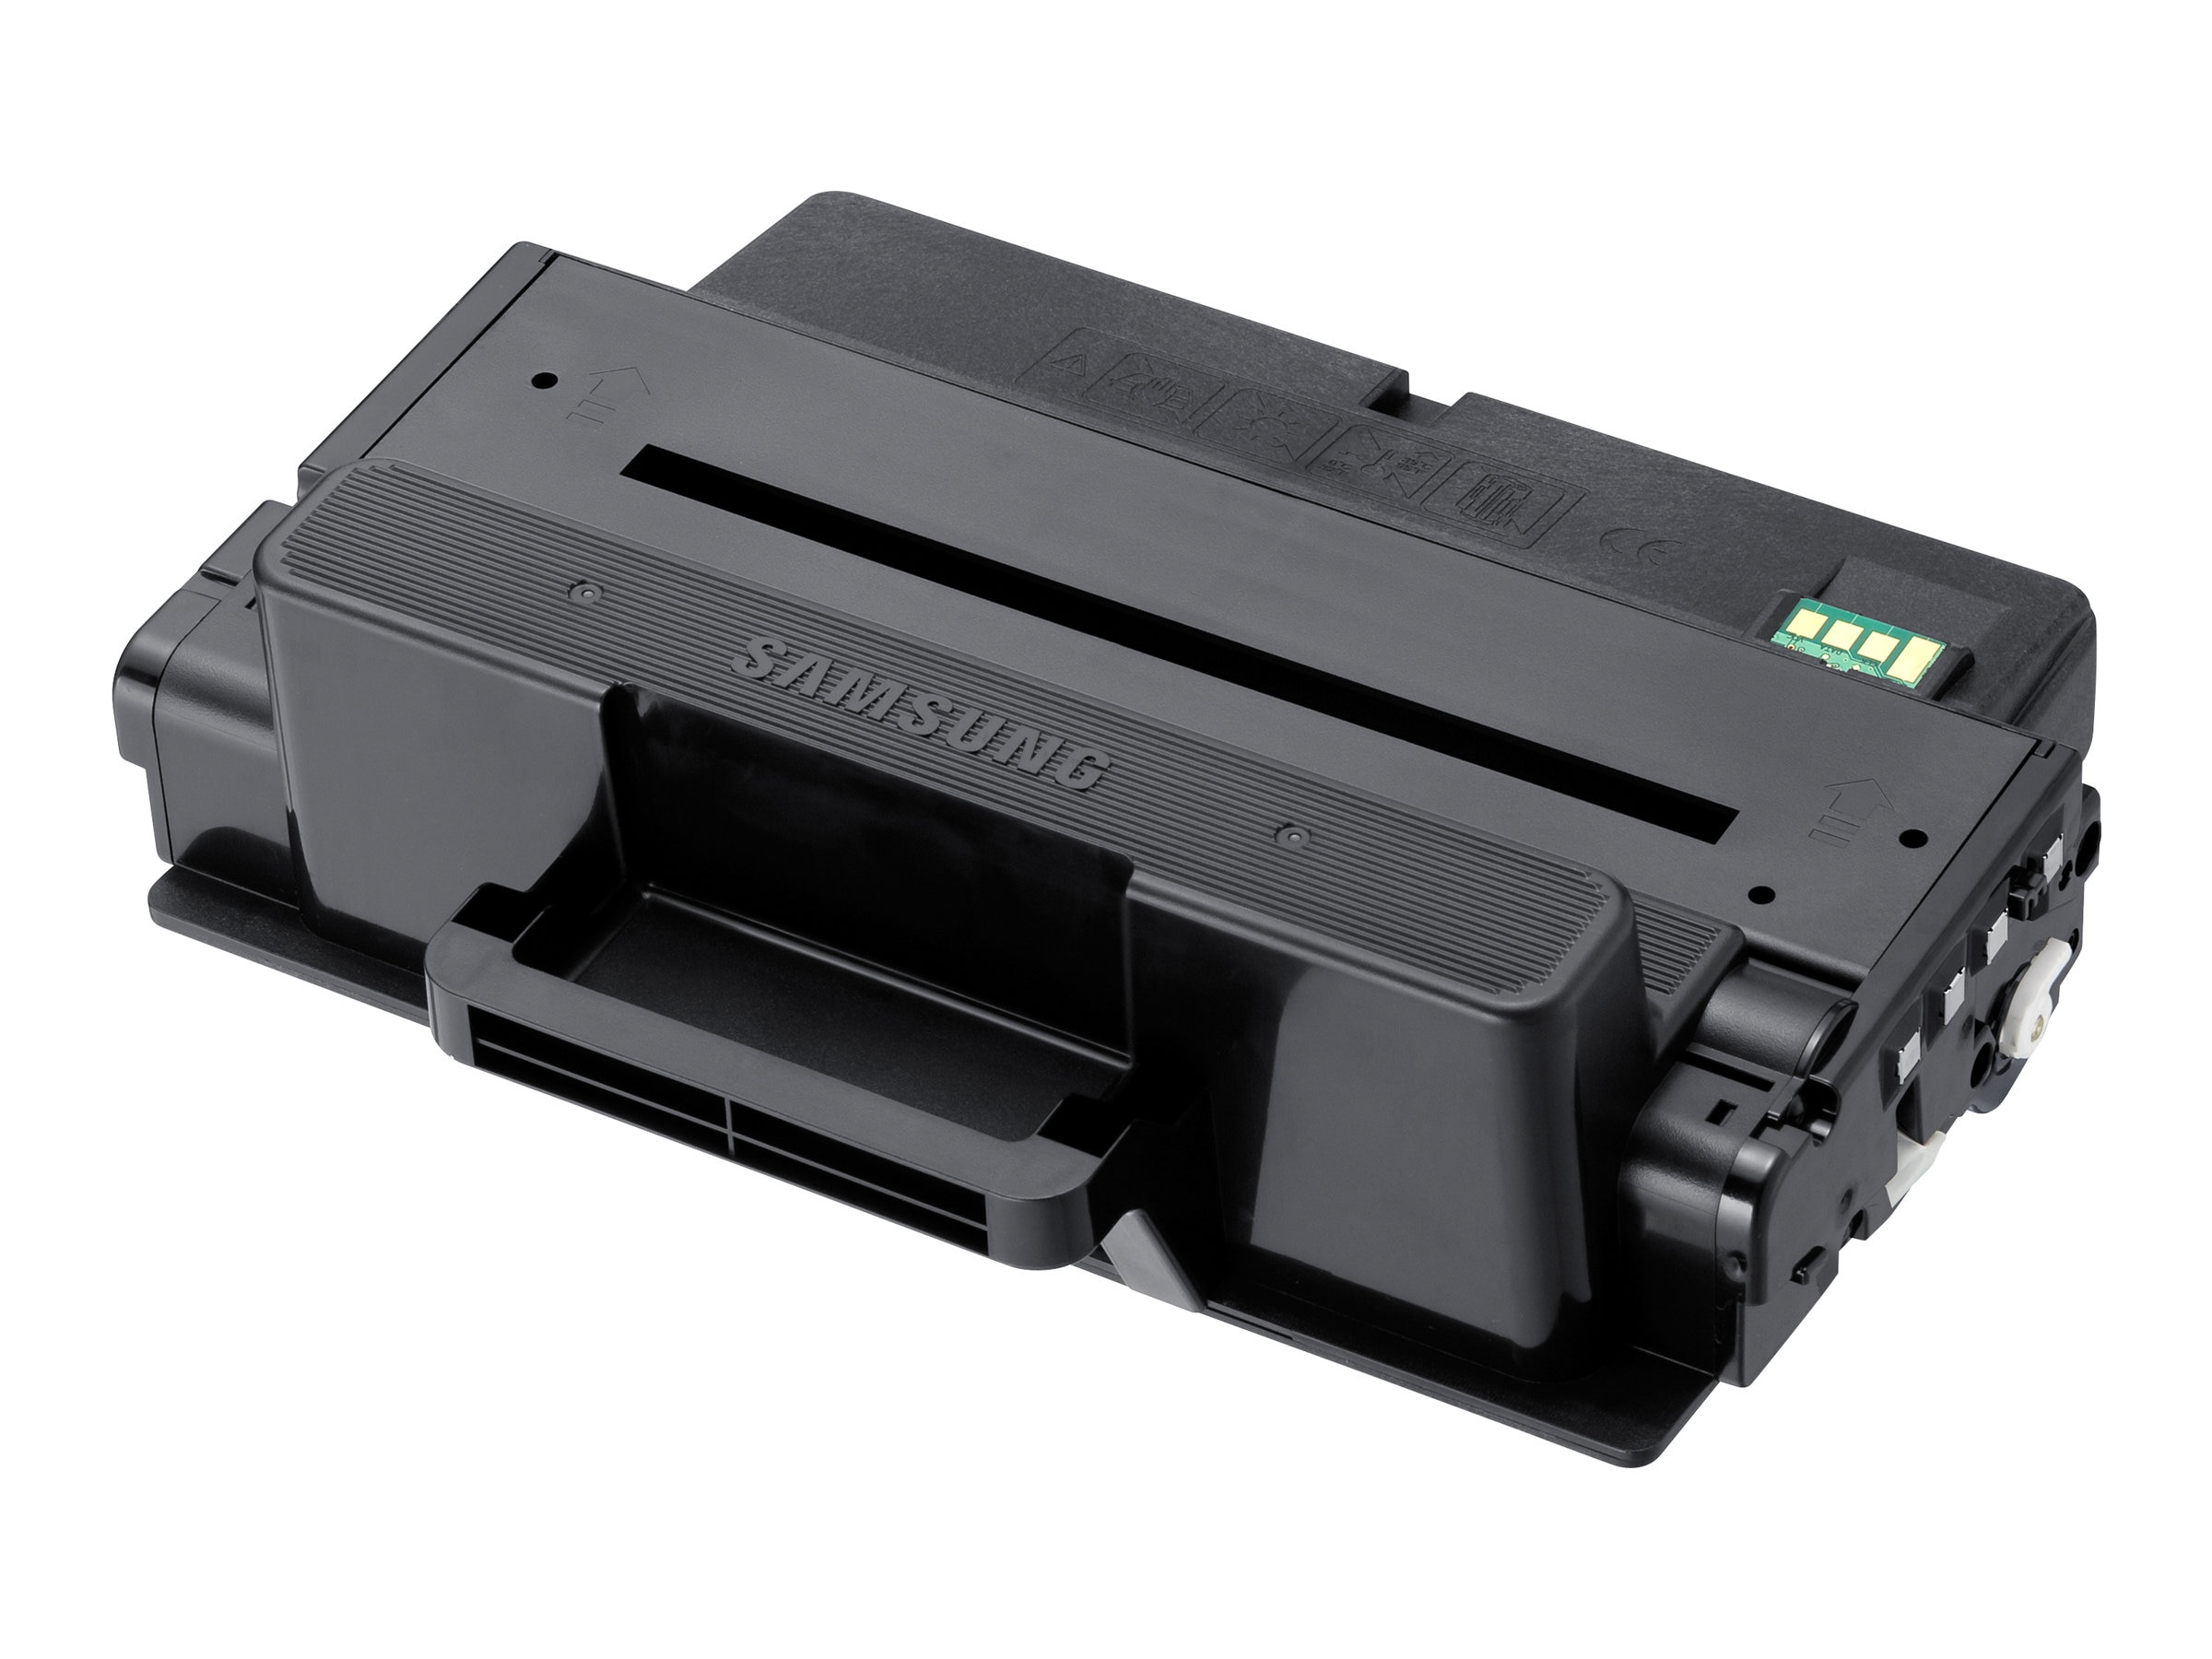 Samsung Black Extra High Yield Toner Cartridge for ML-3712ND Printer, MLT-D205E